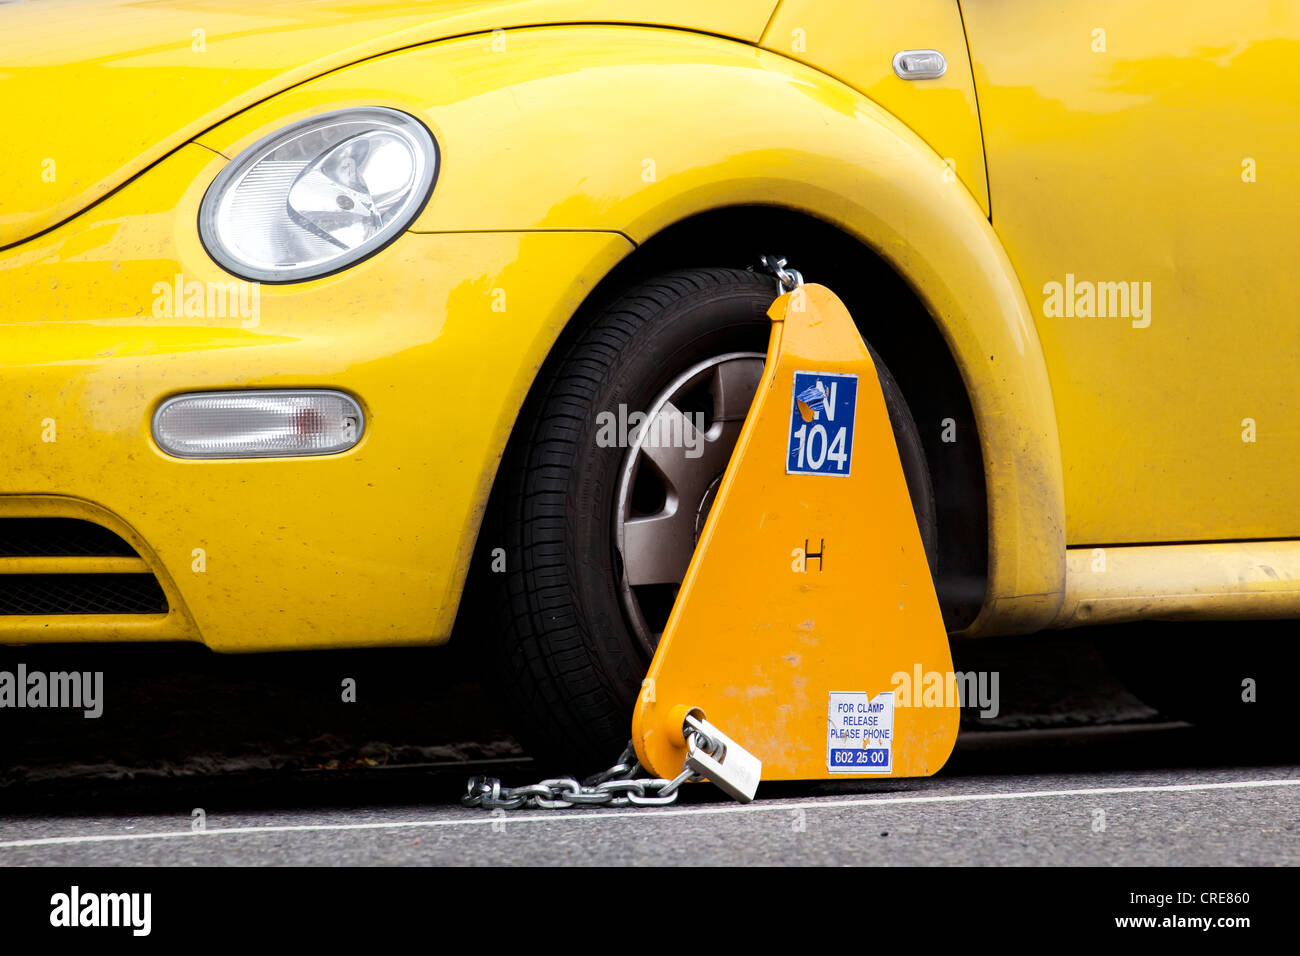 VW Beetle car with a wheel clamp for false parking in Dublin, Ireland, Europe - Stock Image